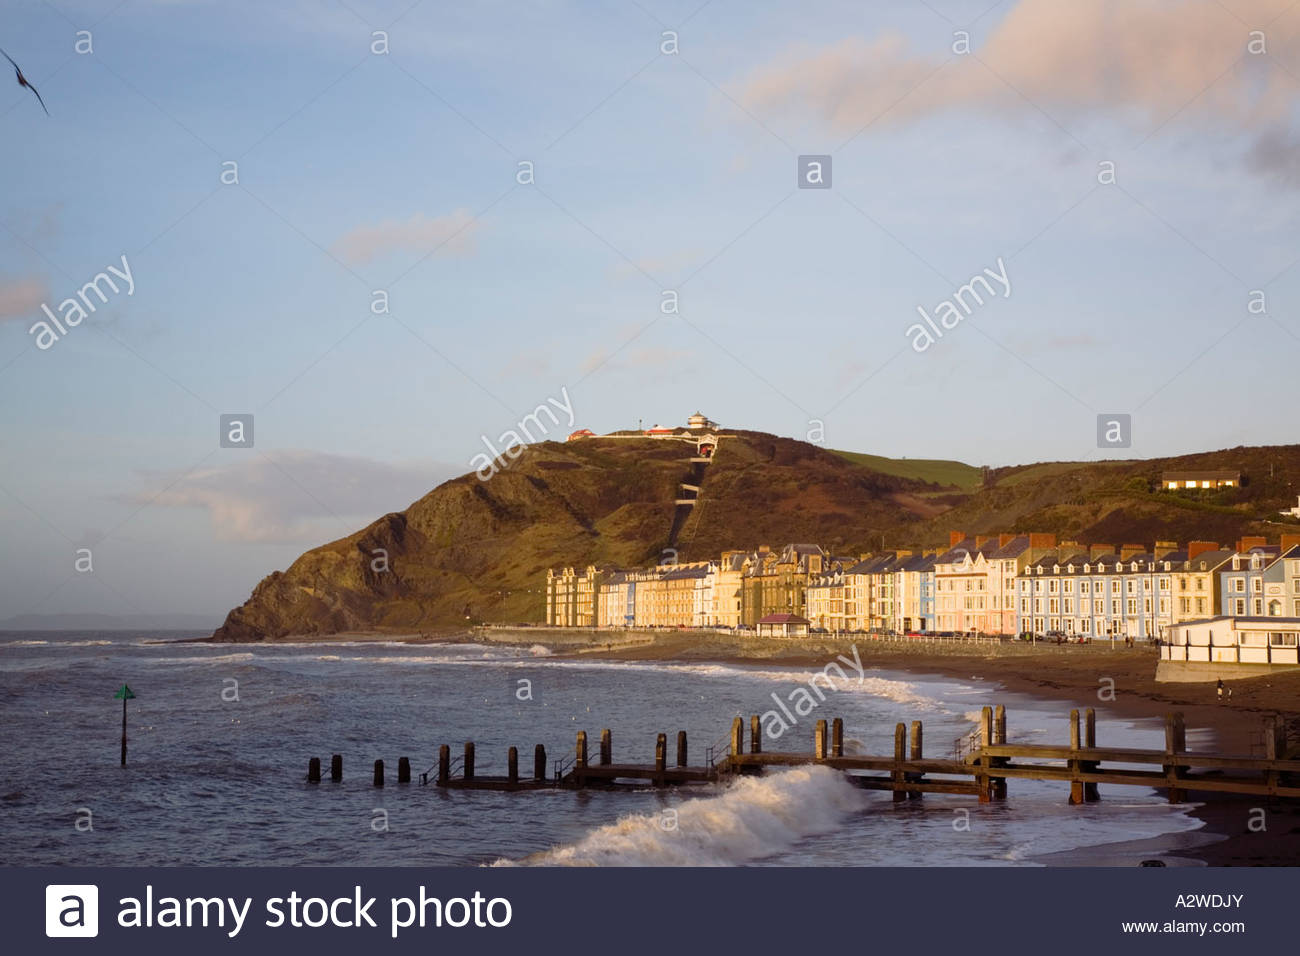 Constitution Hill Mid-Wales, Beach and Victorian seafront buildings by